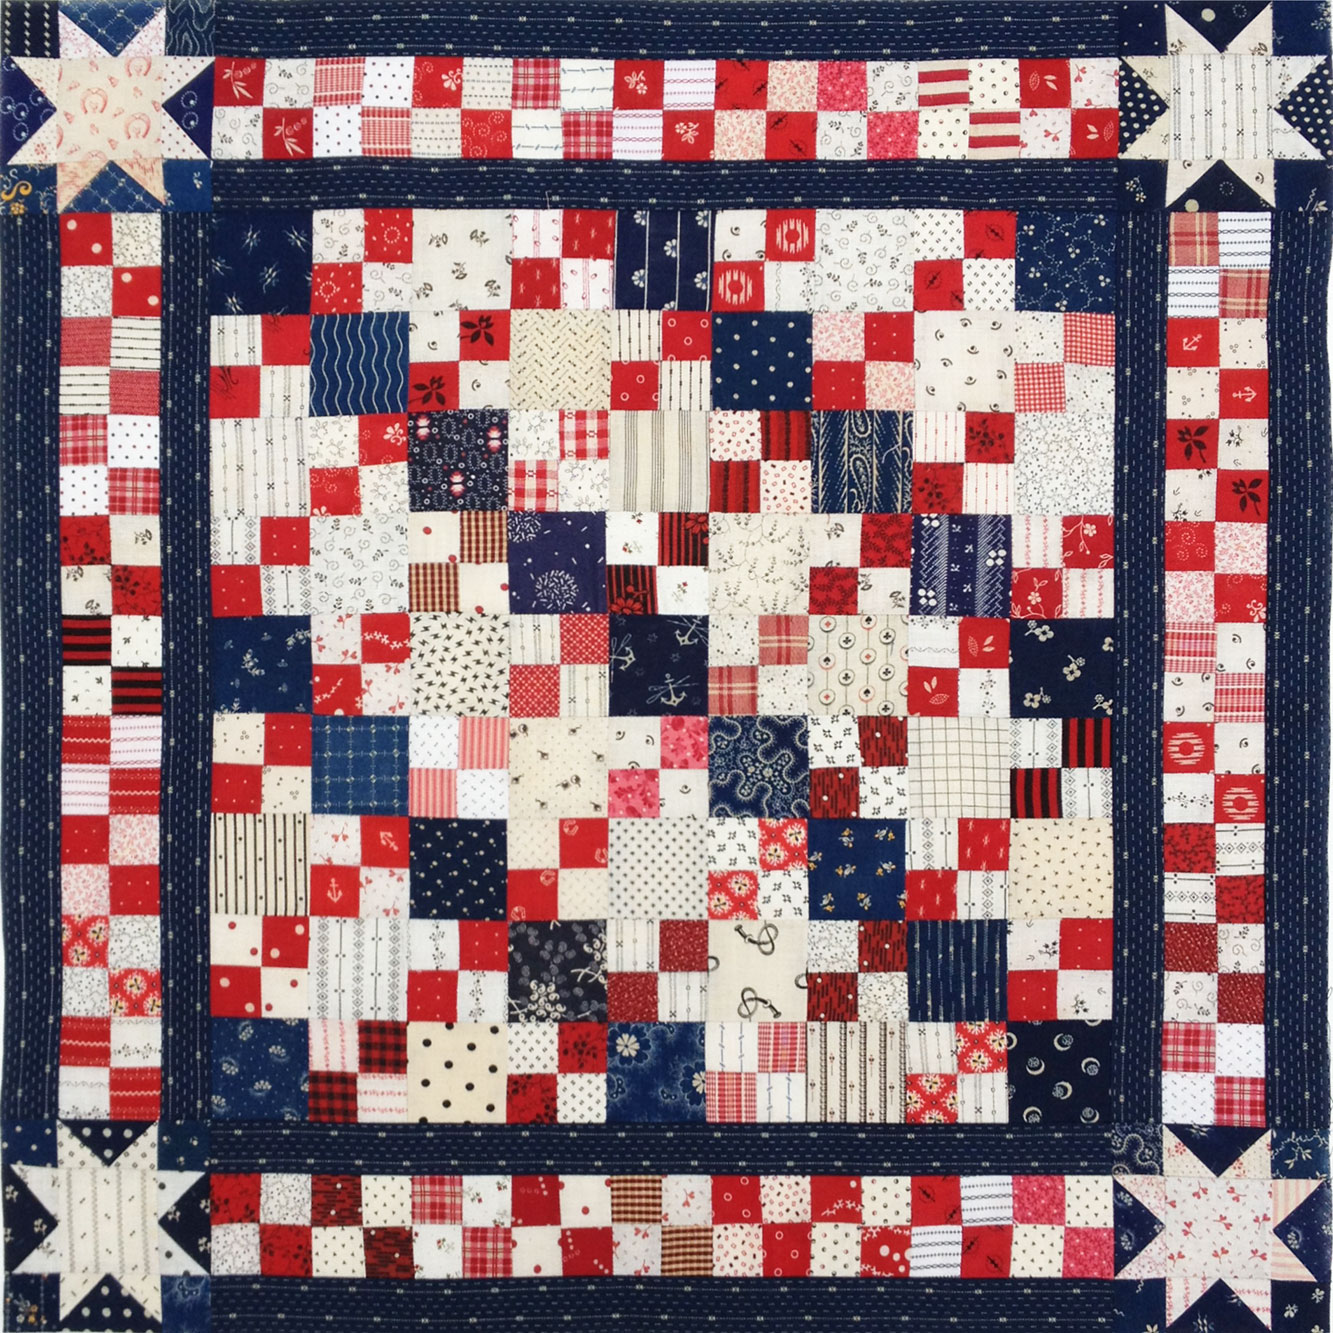 Patriotic Quilt Patterns For Free : Easy Patriotic Quilt Patterns - Bing images